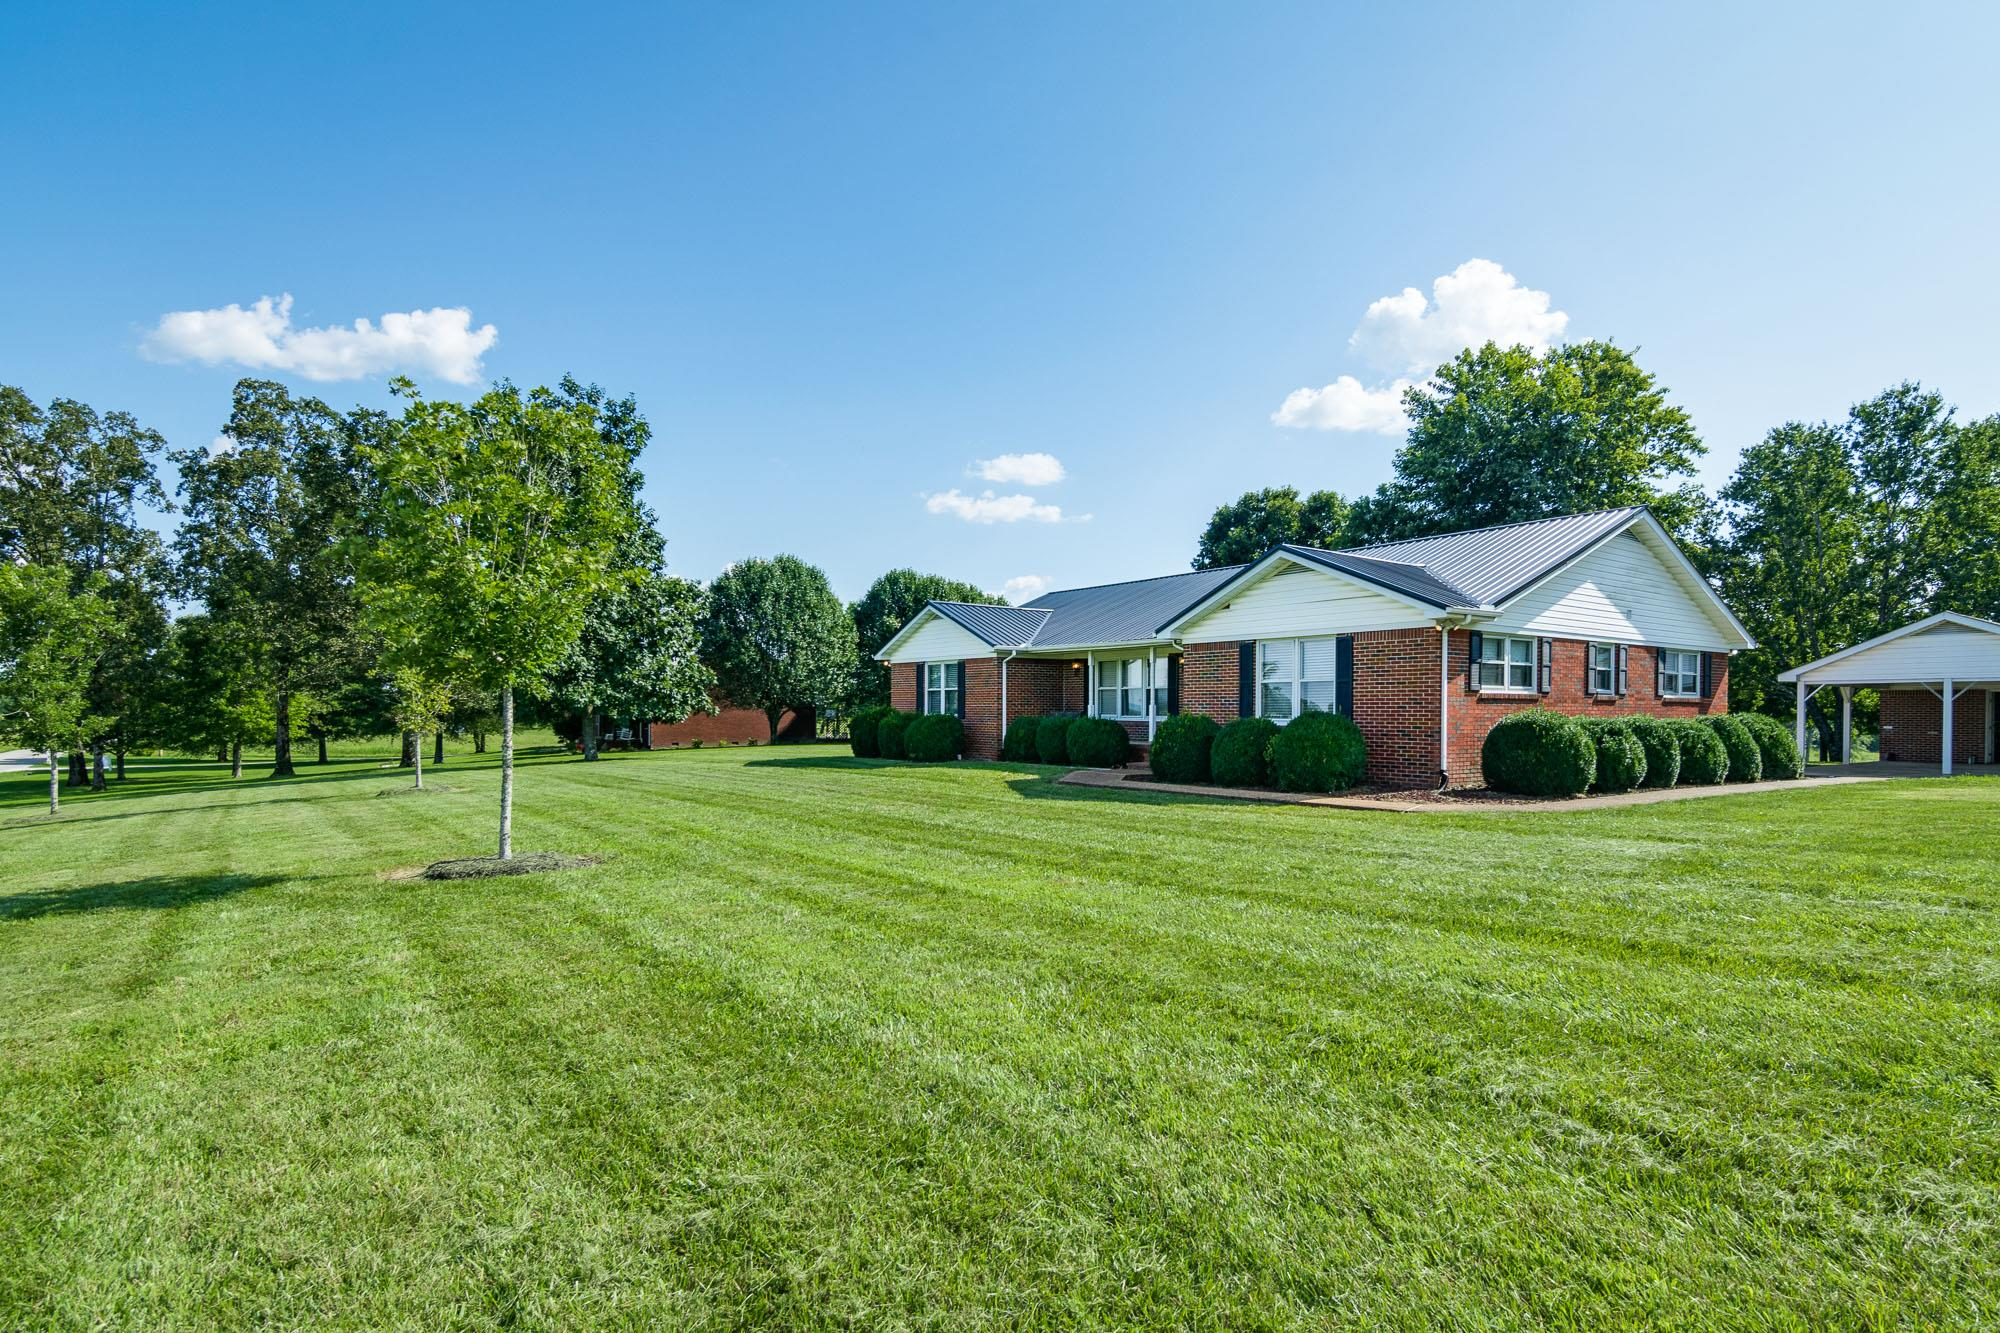 6577 Lucky Rd, McMinnville, TN 37110 - McMinnville, TN real estate listing